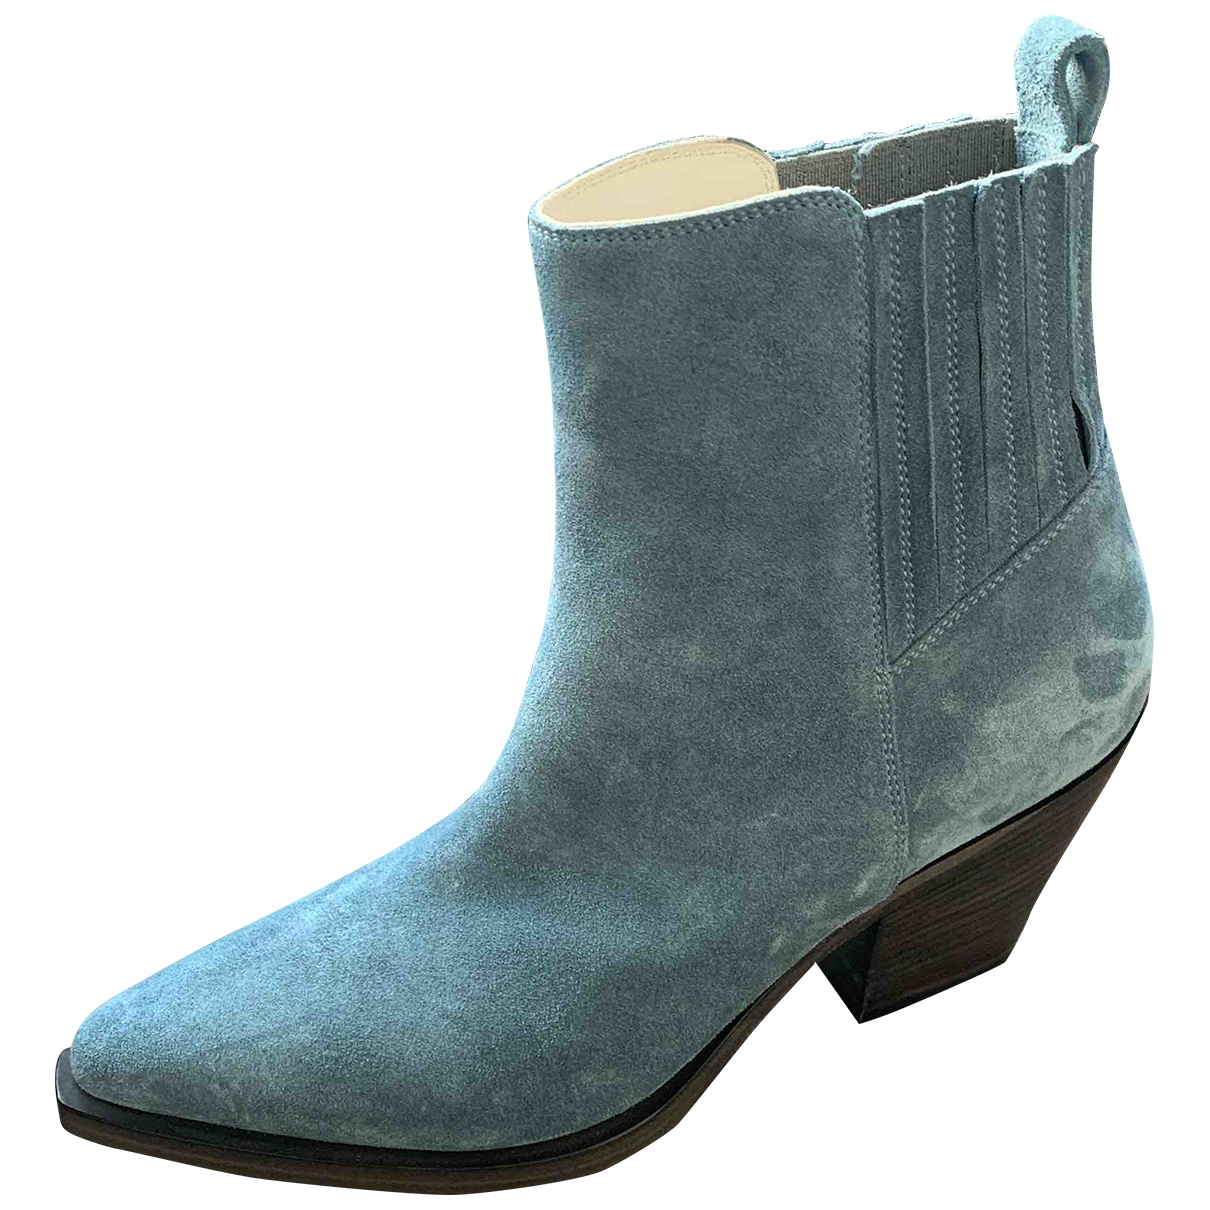 Sartore \N Blue Suede Ankle boots for Women 35 EU